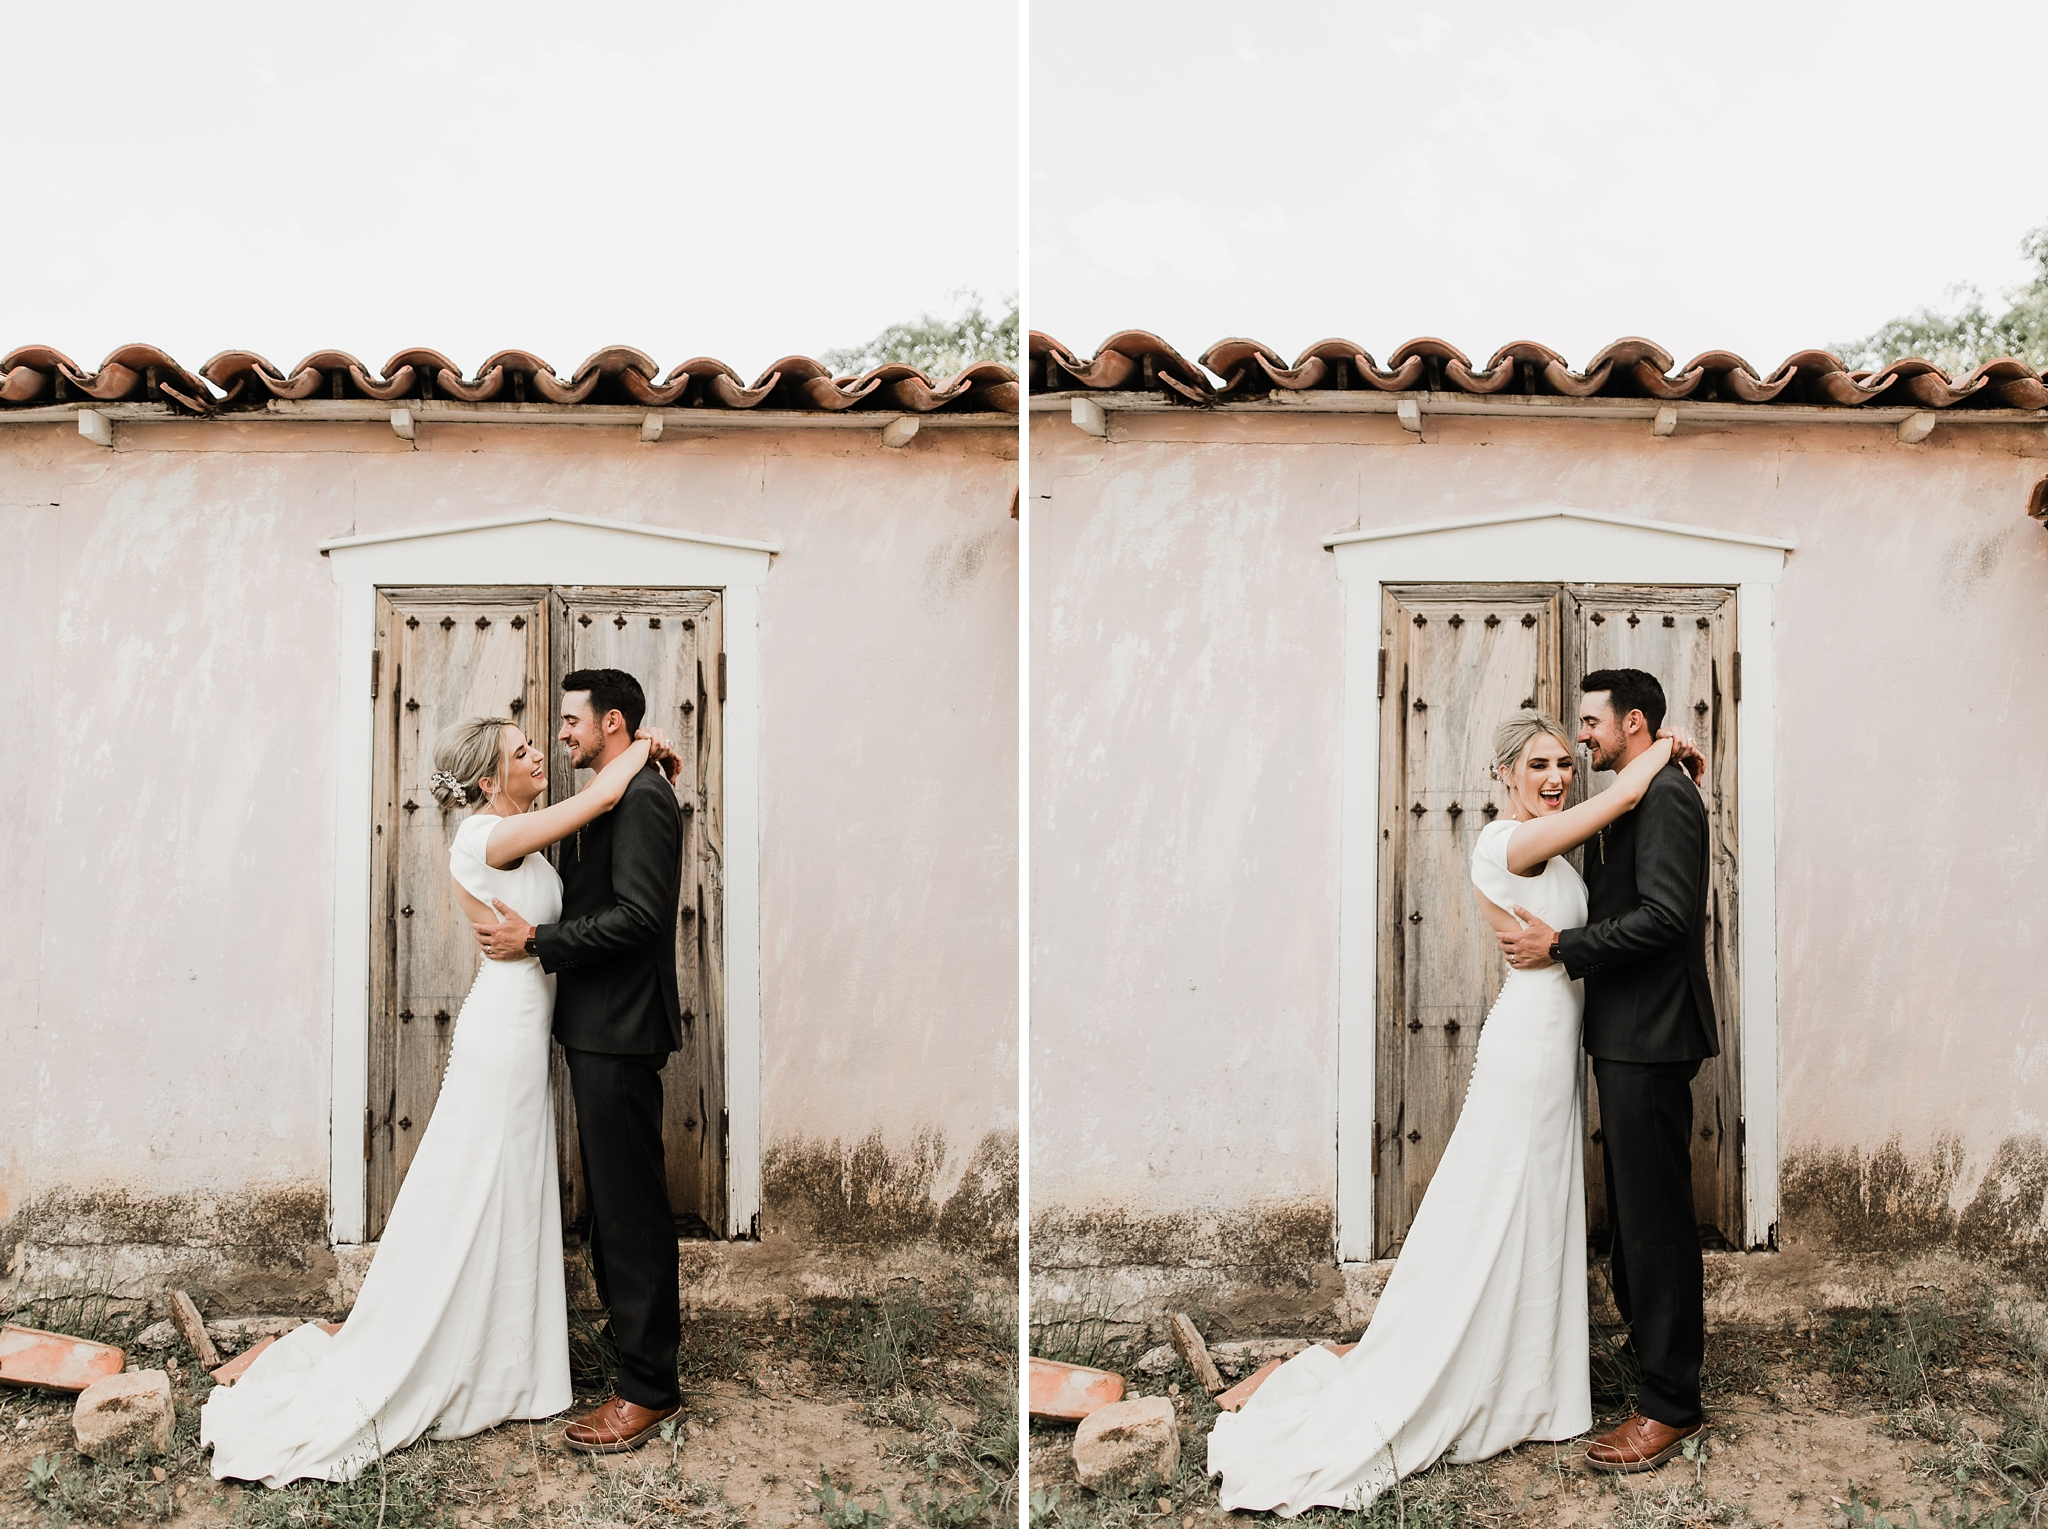 Alicia+lucia+photography+-+albuquerque+wedding+photographer+-+santa+fe+wedding+photography+-+new+mexico+wedding+photographer+-+new+mexico+wedding+-+ruidoso+wedding+-+southern+new+mexico+wedding+-+san+patricio+wedding+-+spring+wedding_0118.jpg